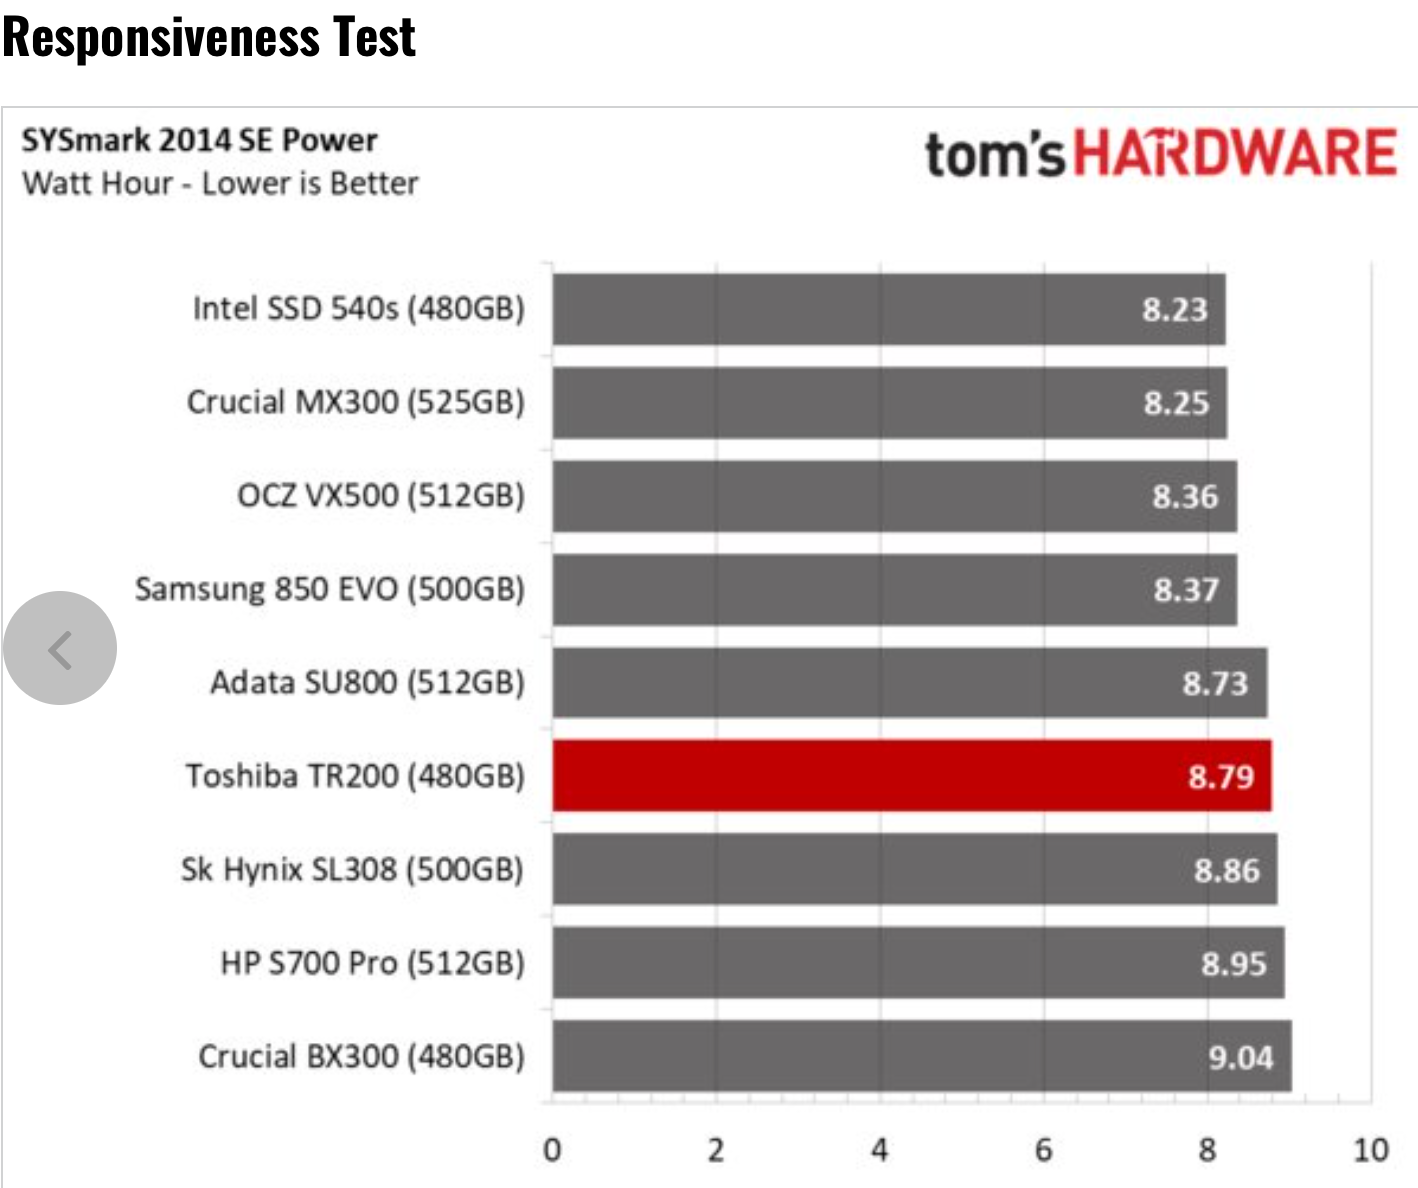 Tom's Hardware – Toshiba TR200 SSD Review using BAPCo's SYSmark 2014 SE Responsiveness + Energy Benchmark Test